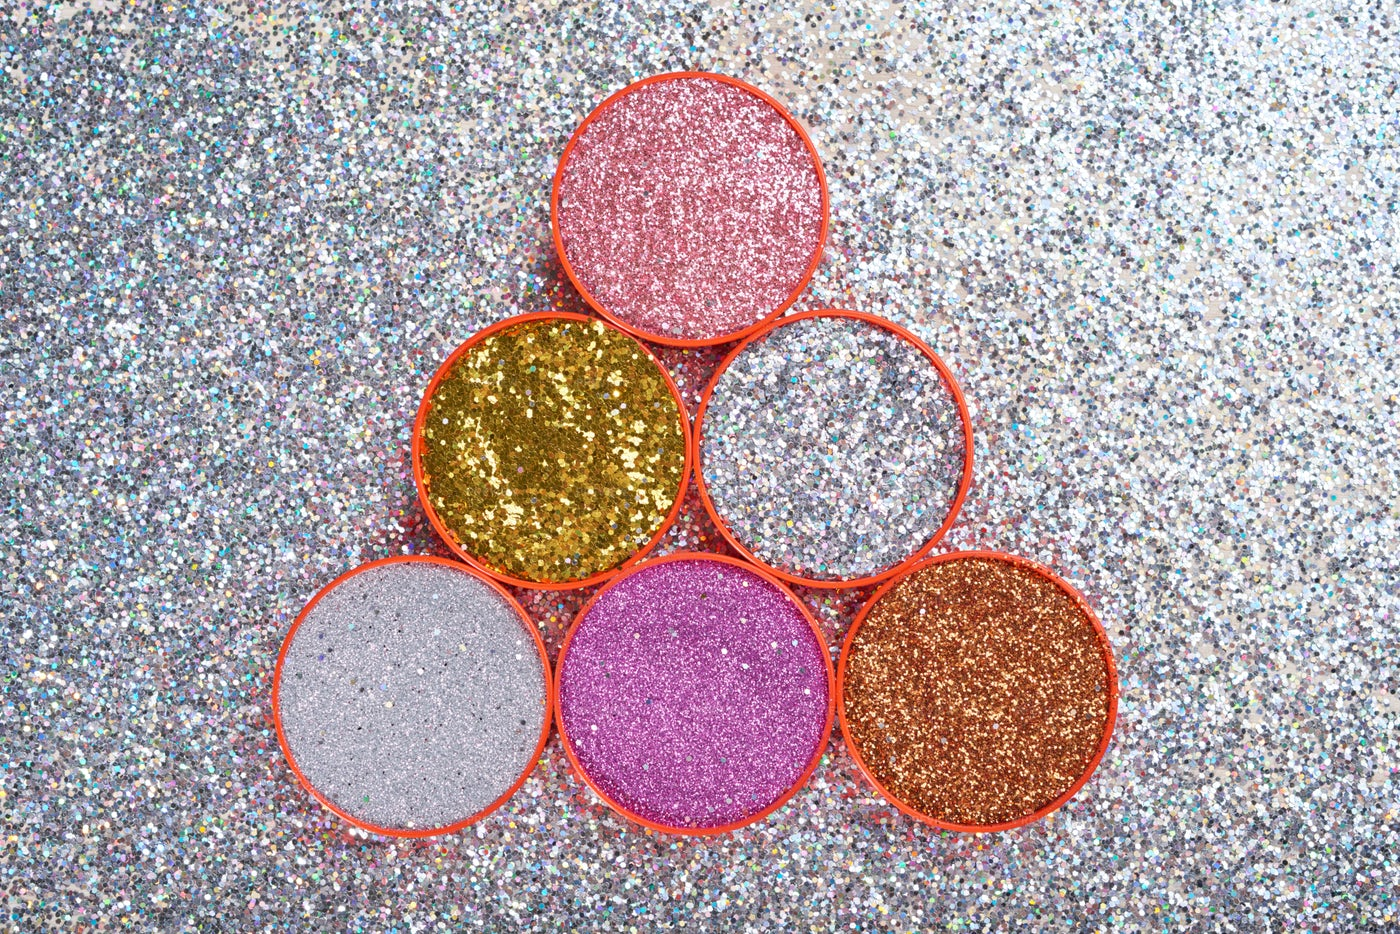 Plastic Lids Filled With Glitters: Stock Photos